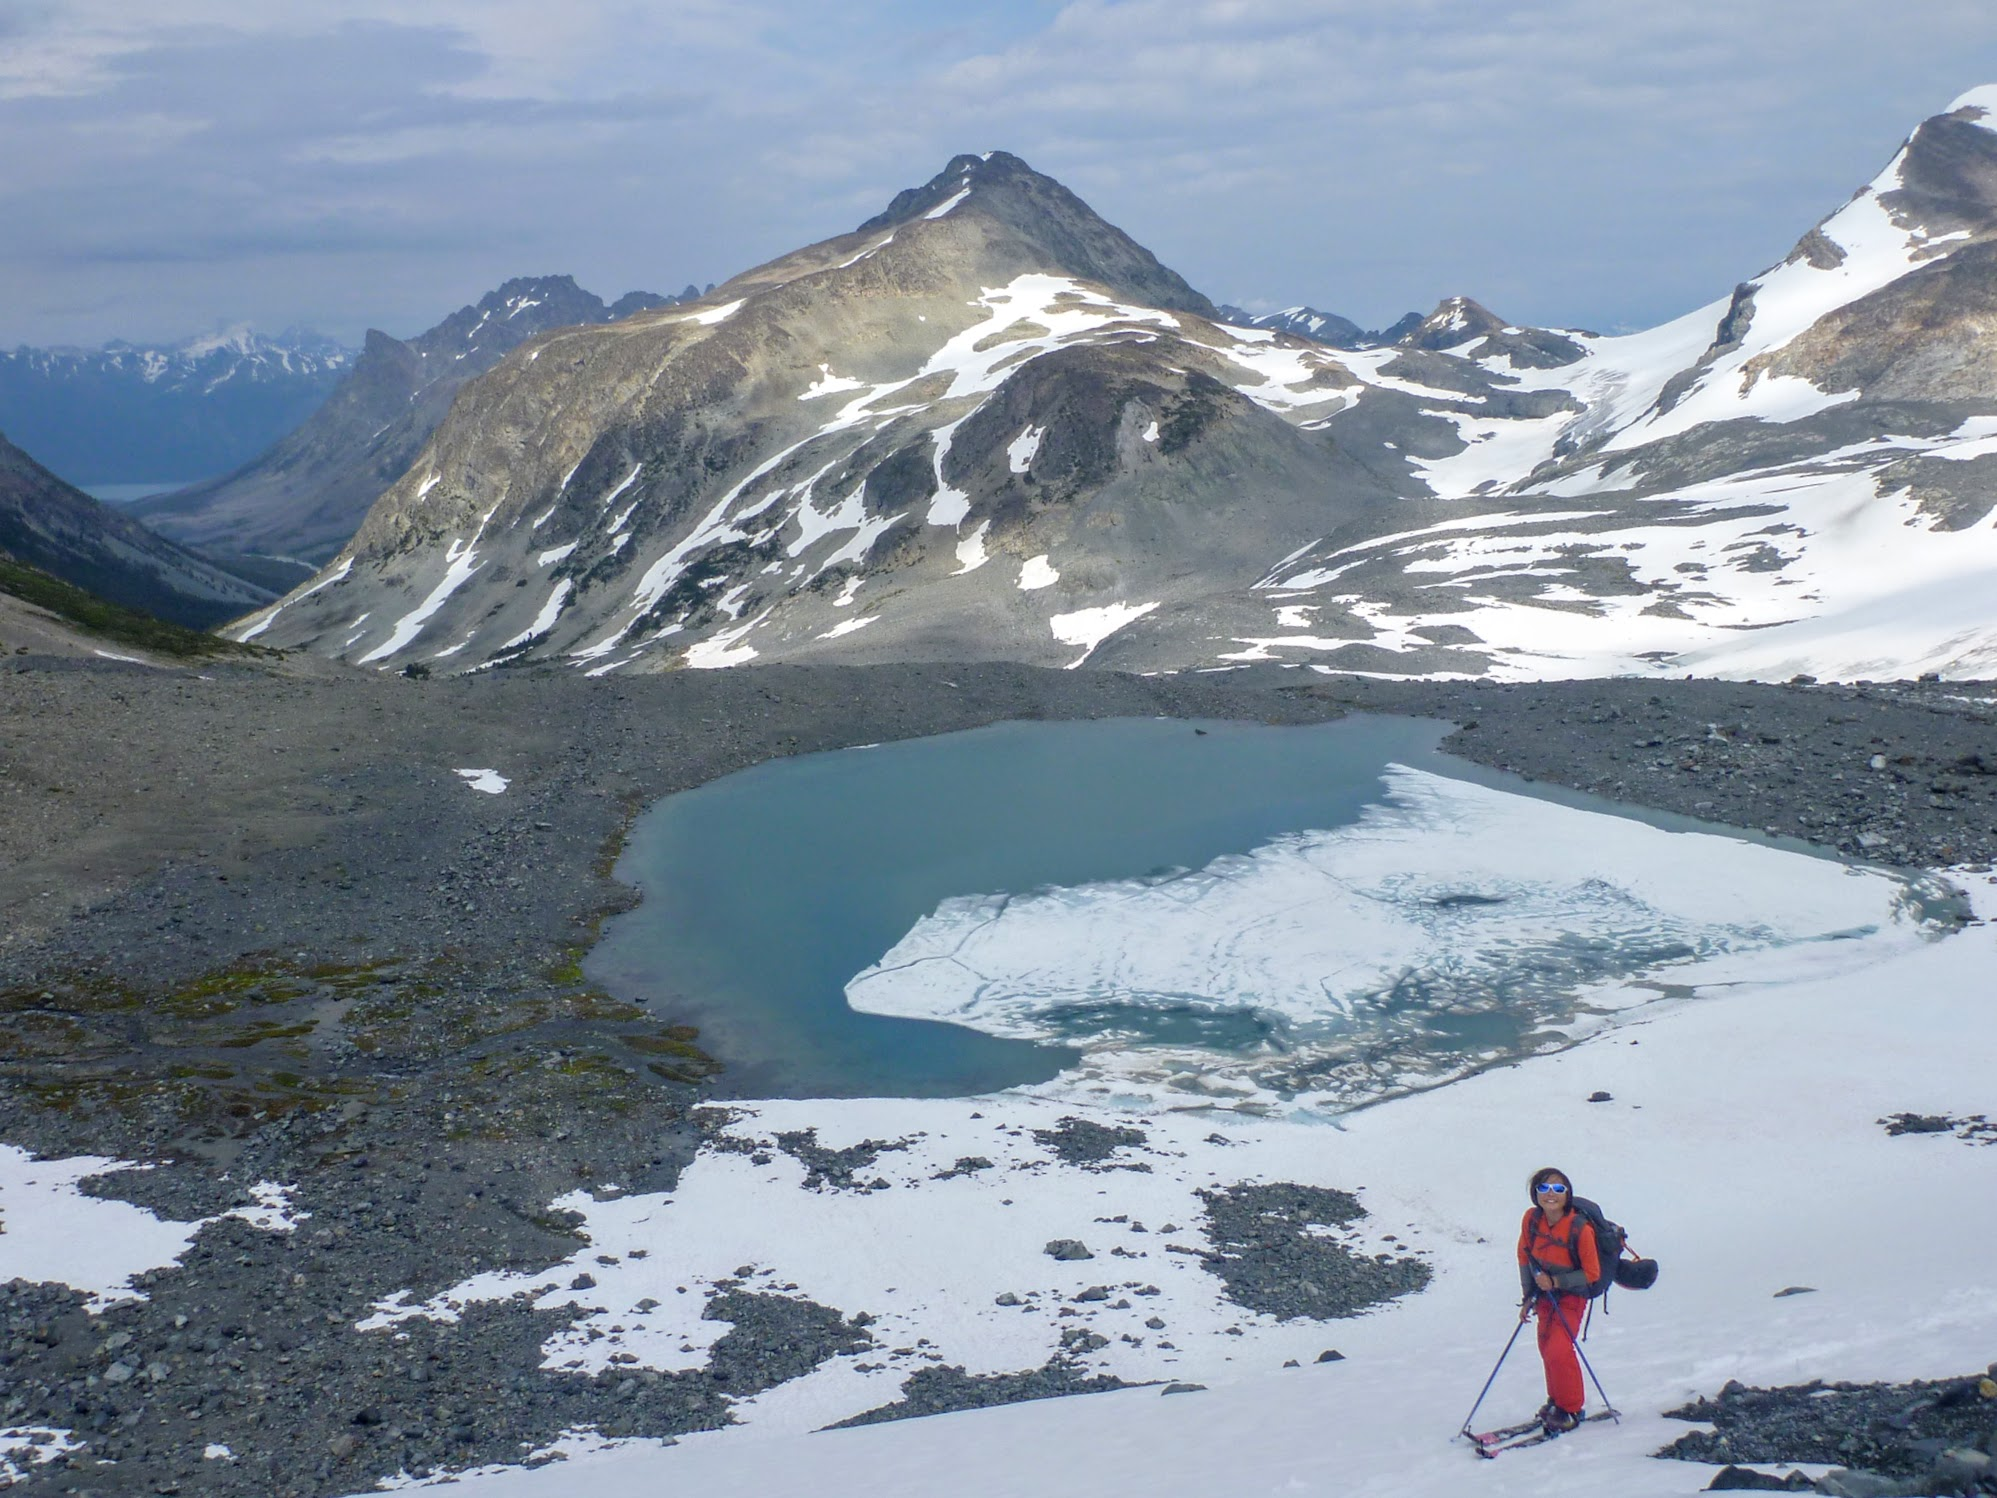 Nearing the top of the morraine ridge that the topo missed. A different part of Chilko Lake is visible down the valley.